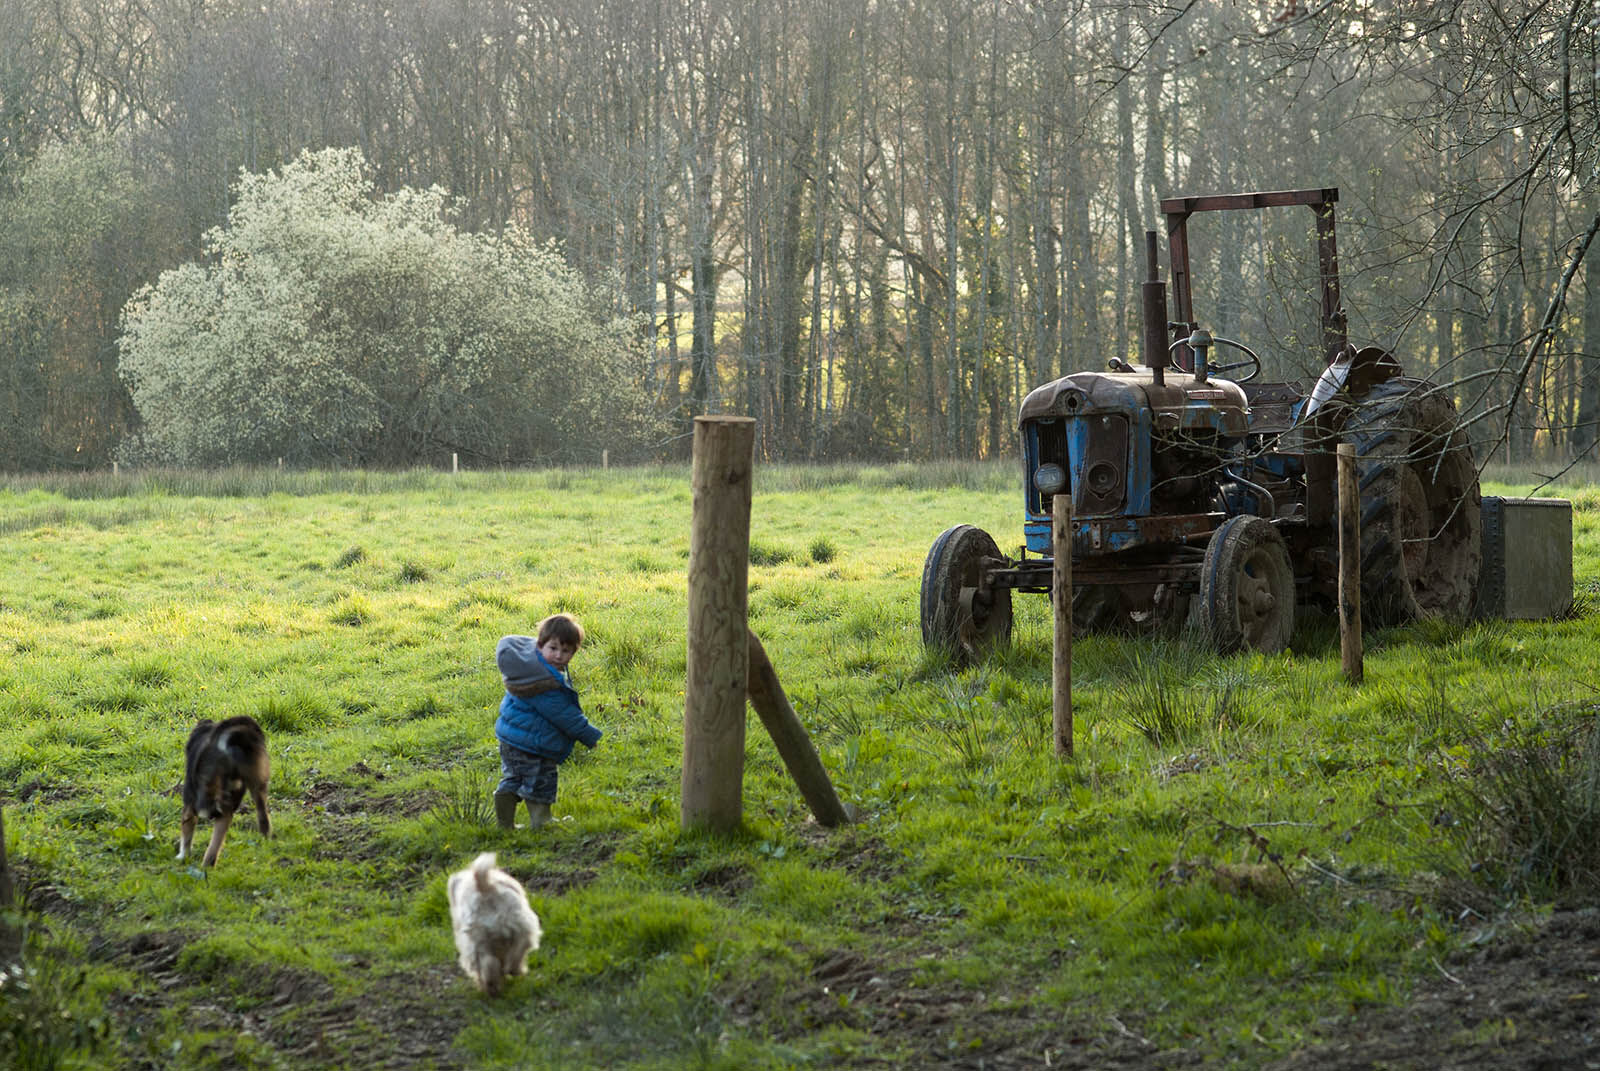 Running to the tractor.